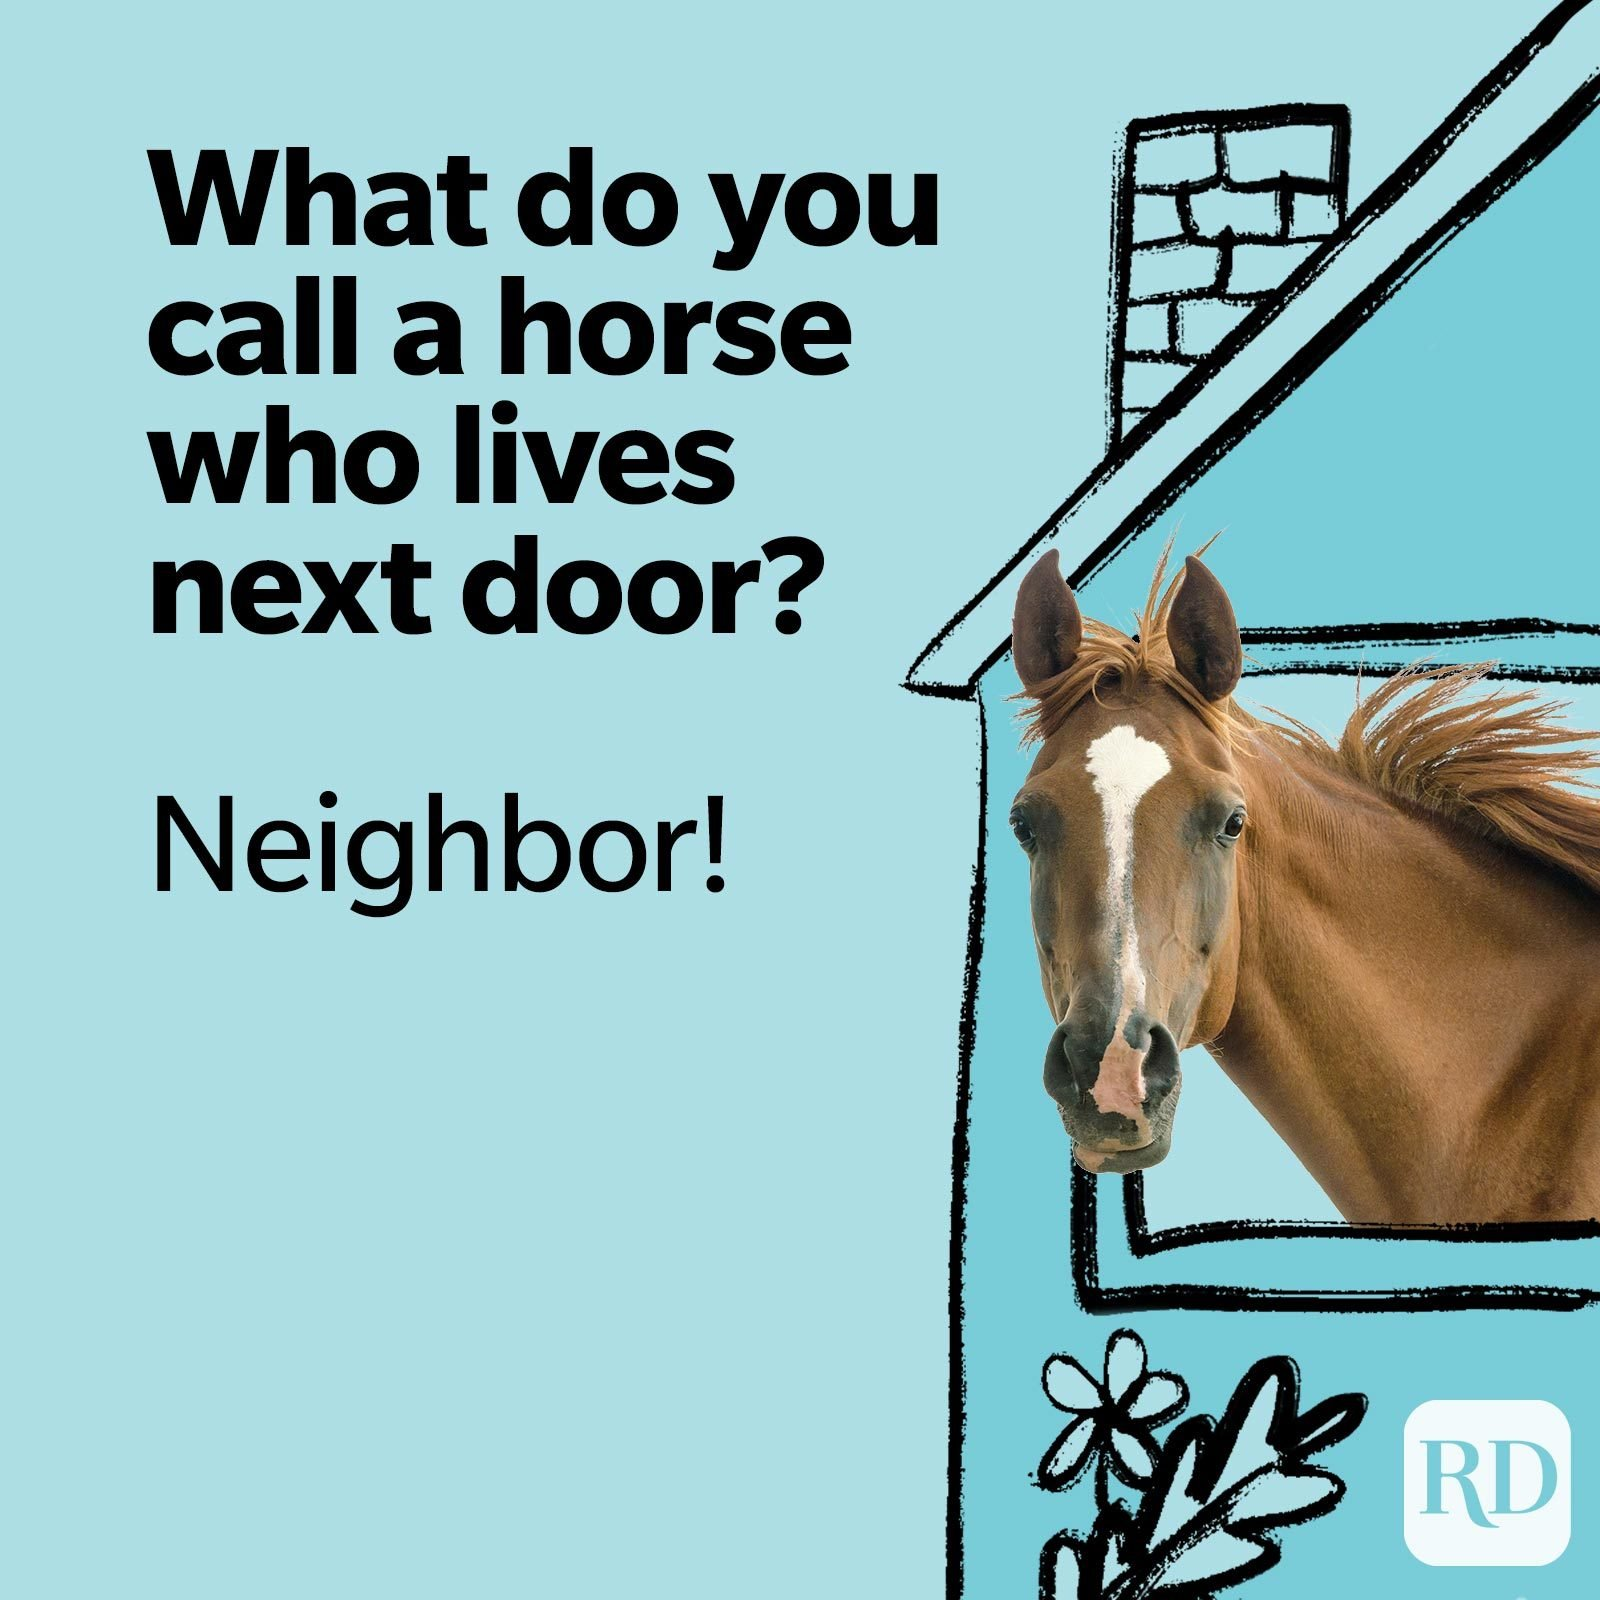 What do you call a horse that lives next door? Neighbor!